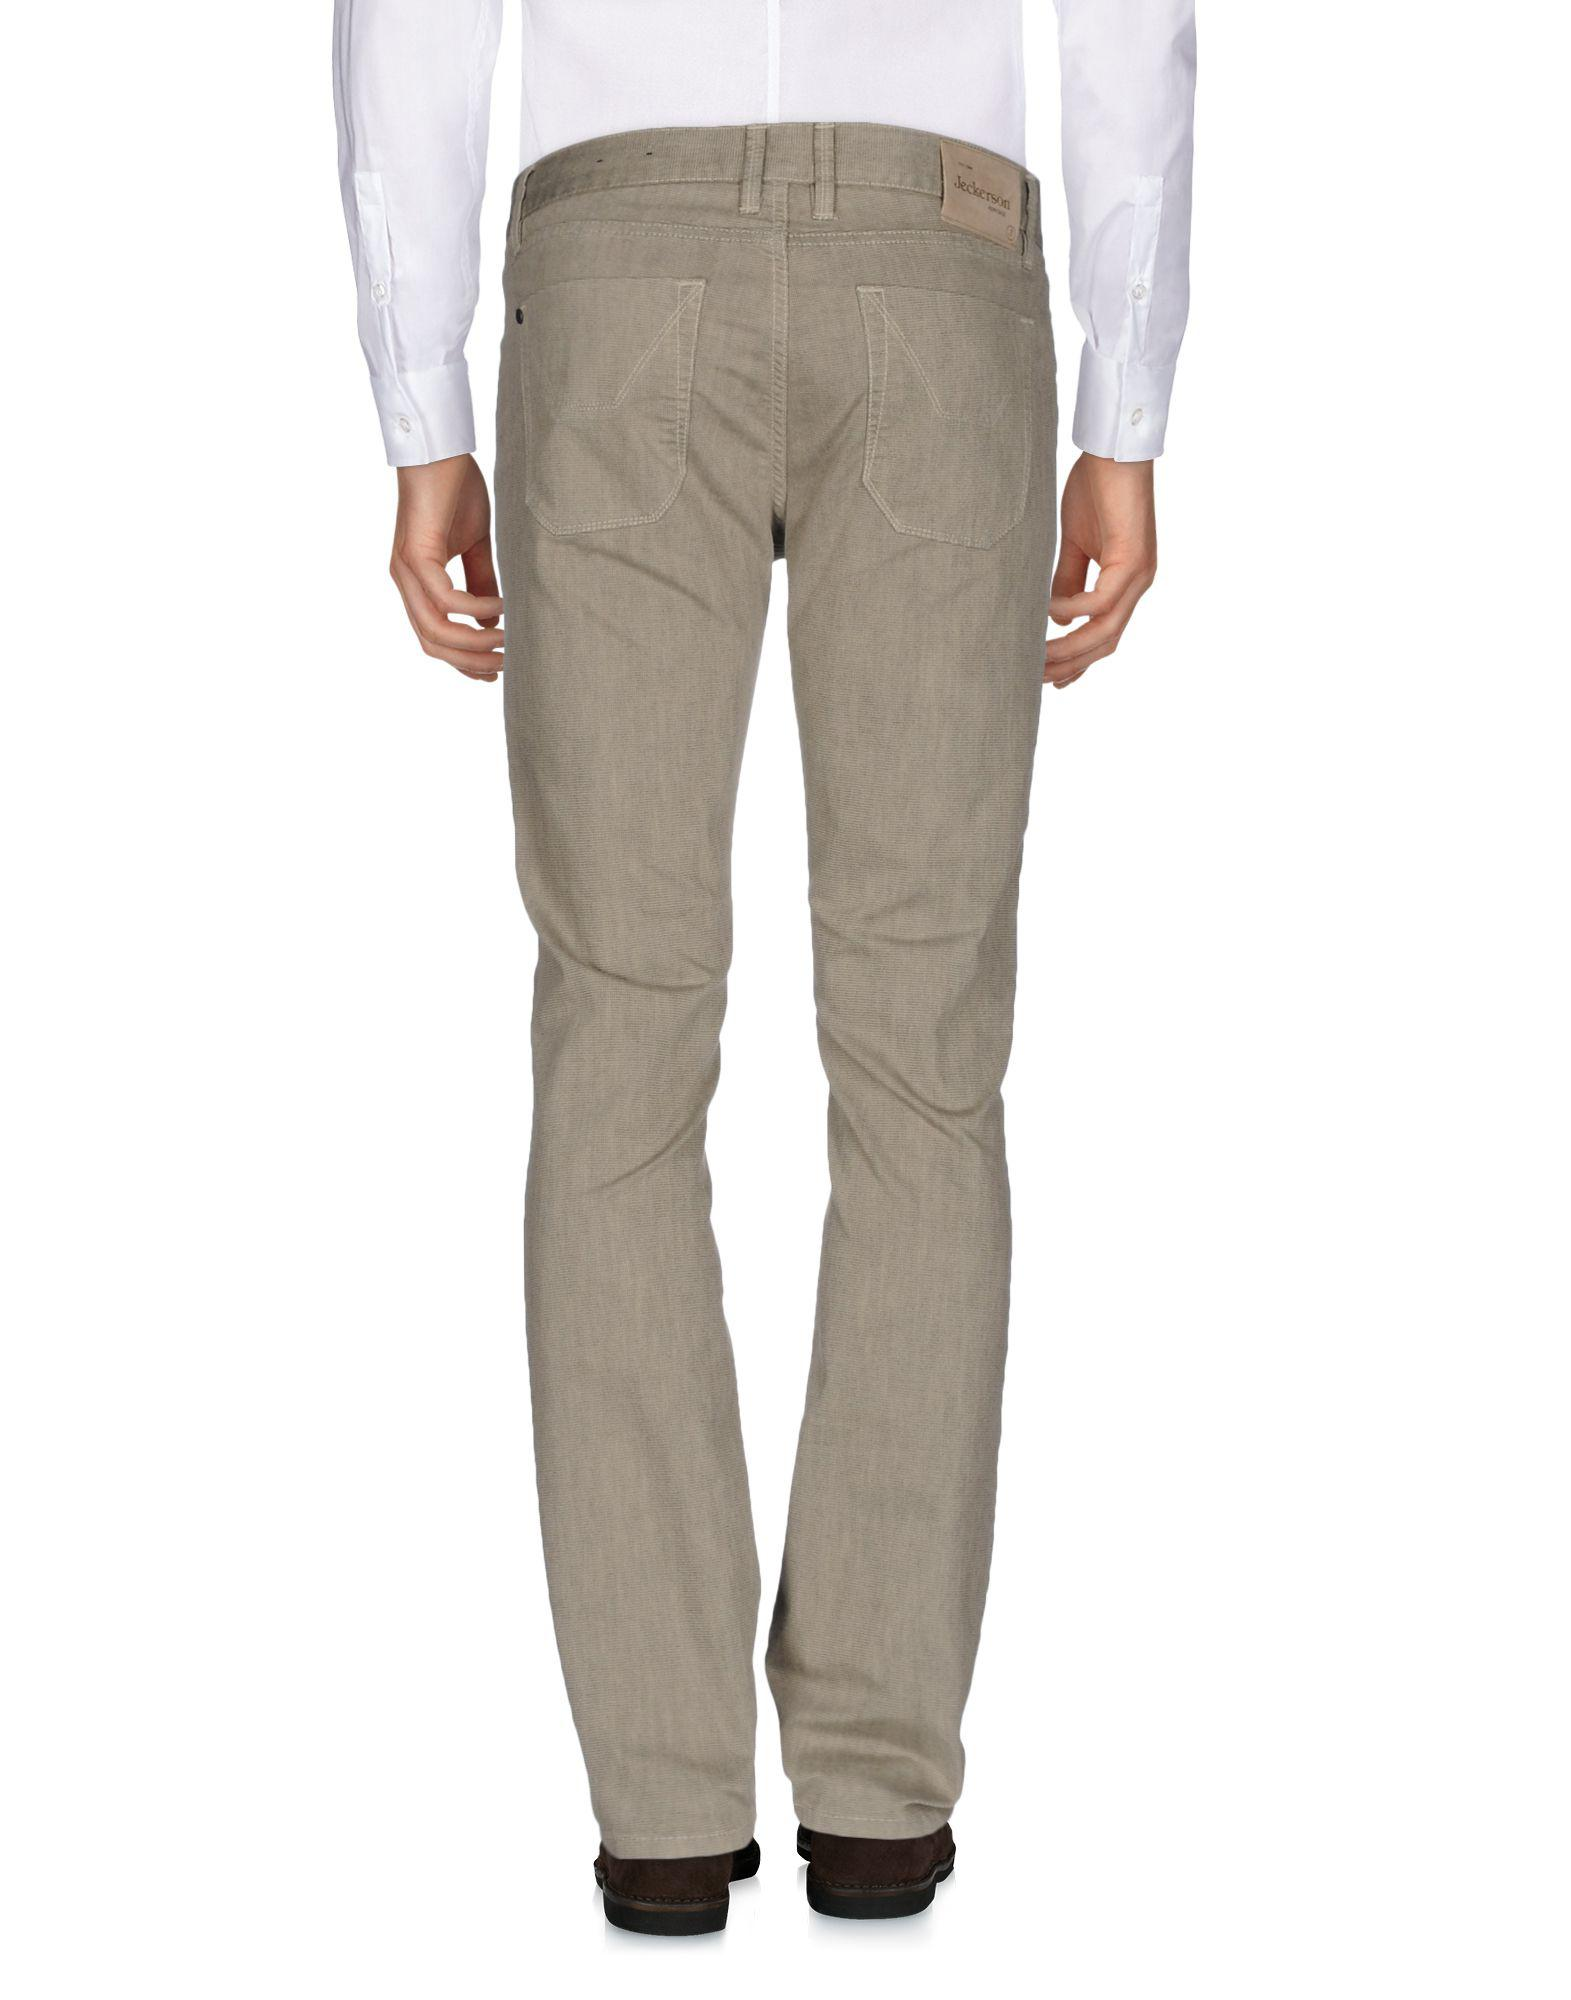 Jeckerson Cotton Casual Pants in Beige (Natural) for Men